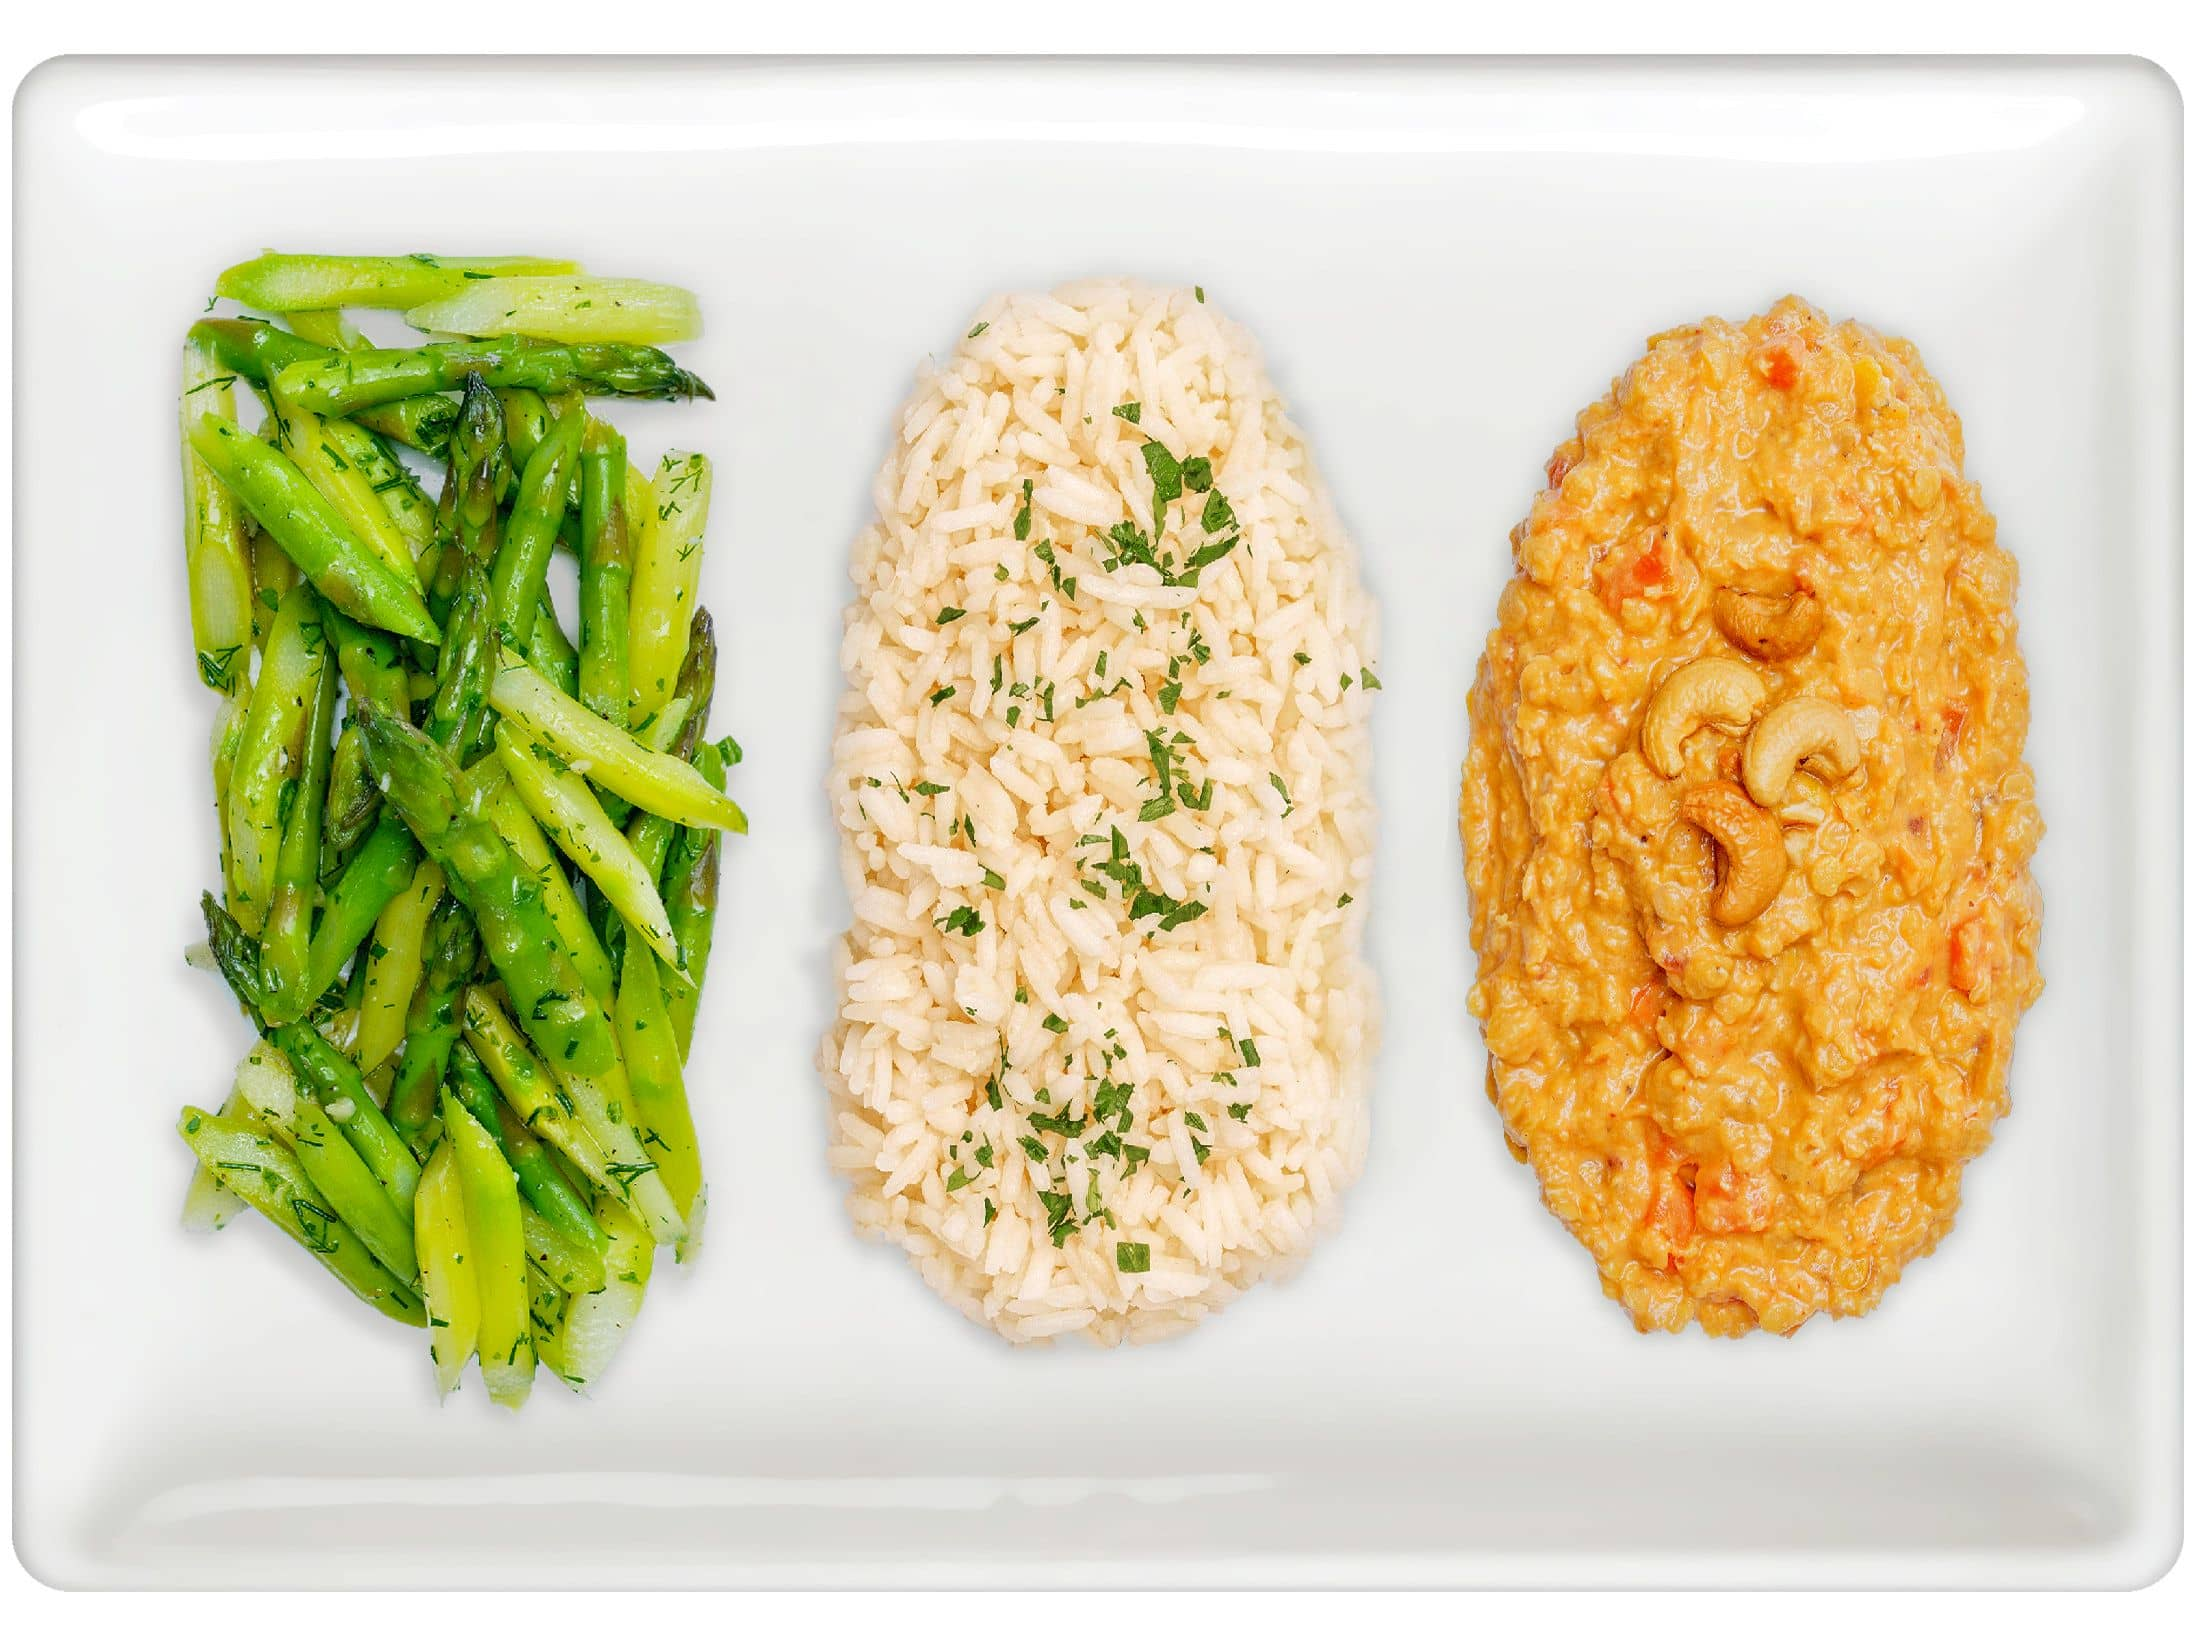 Asparagus, Basmati Rice Pilaf, Red Lentil Curry